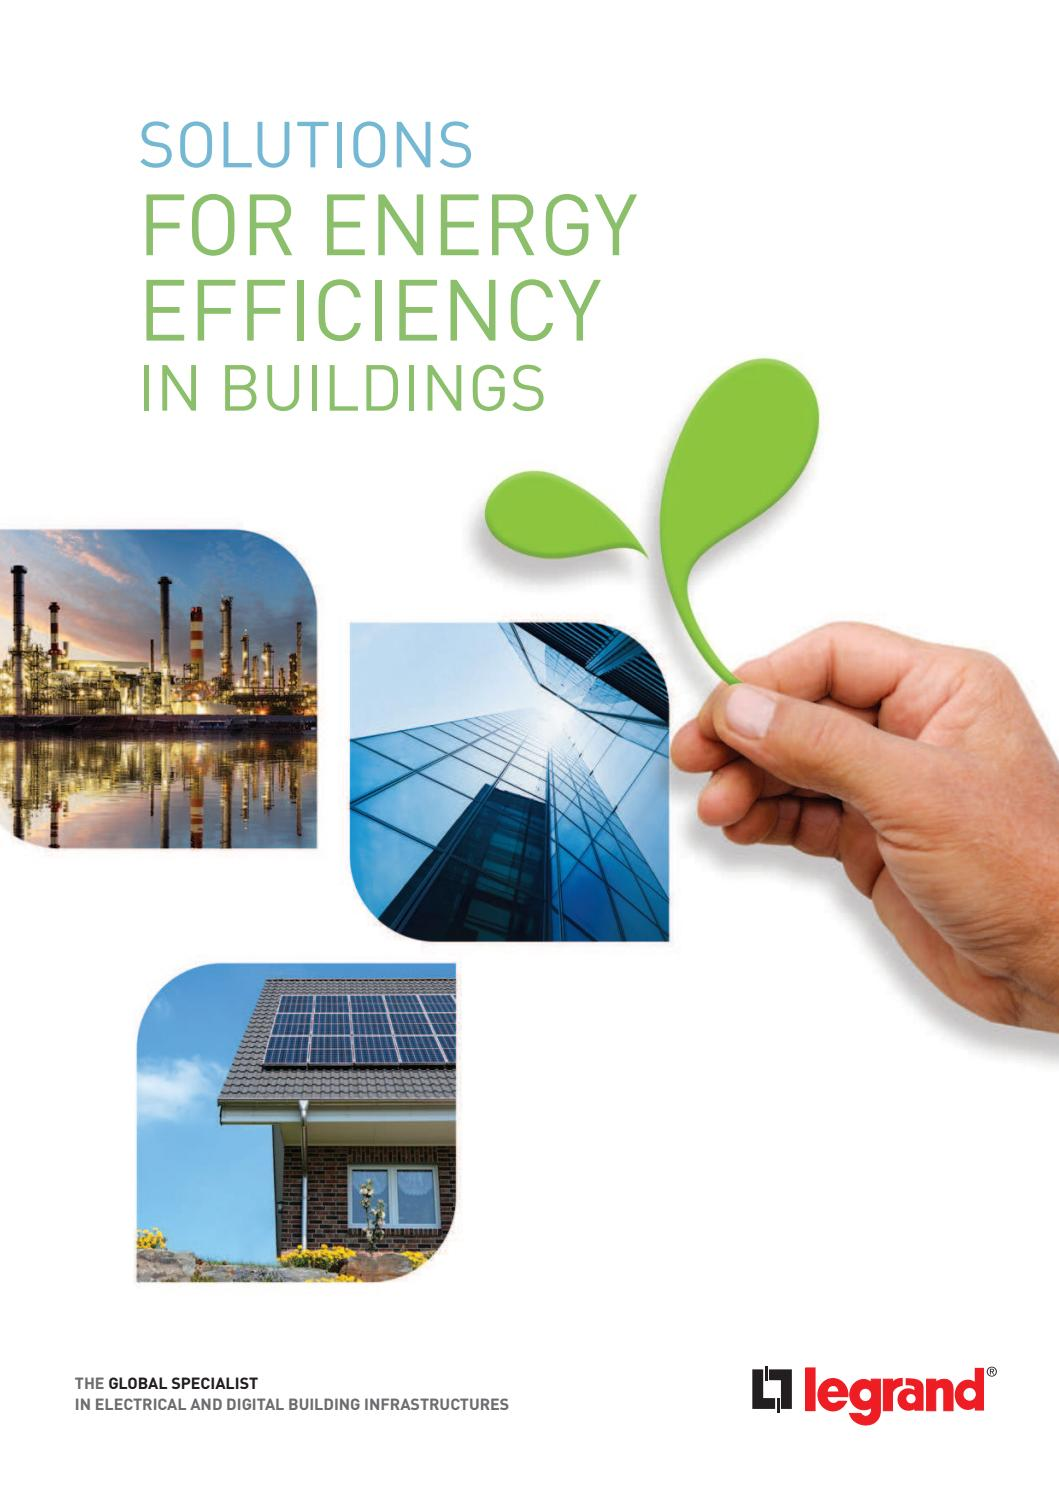 Legrand Solutions For Energy Efficiency In Buildings By Micrographix Design Services Ltd Issuu